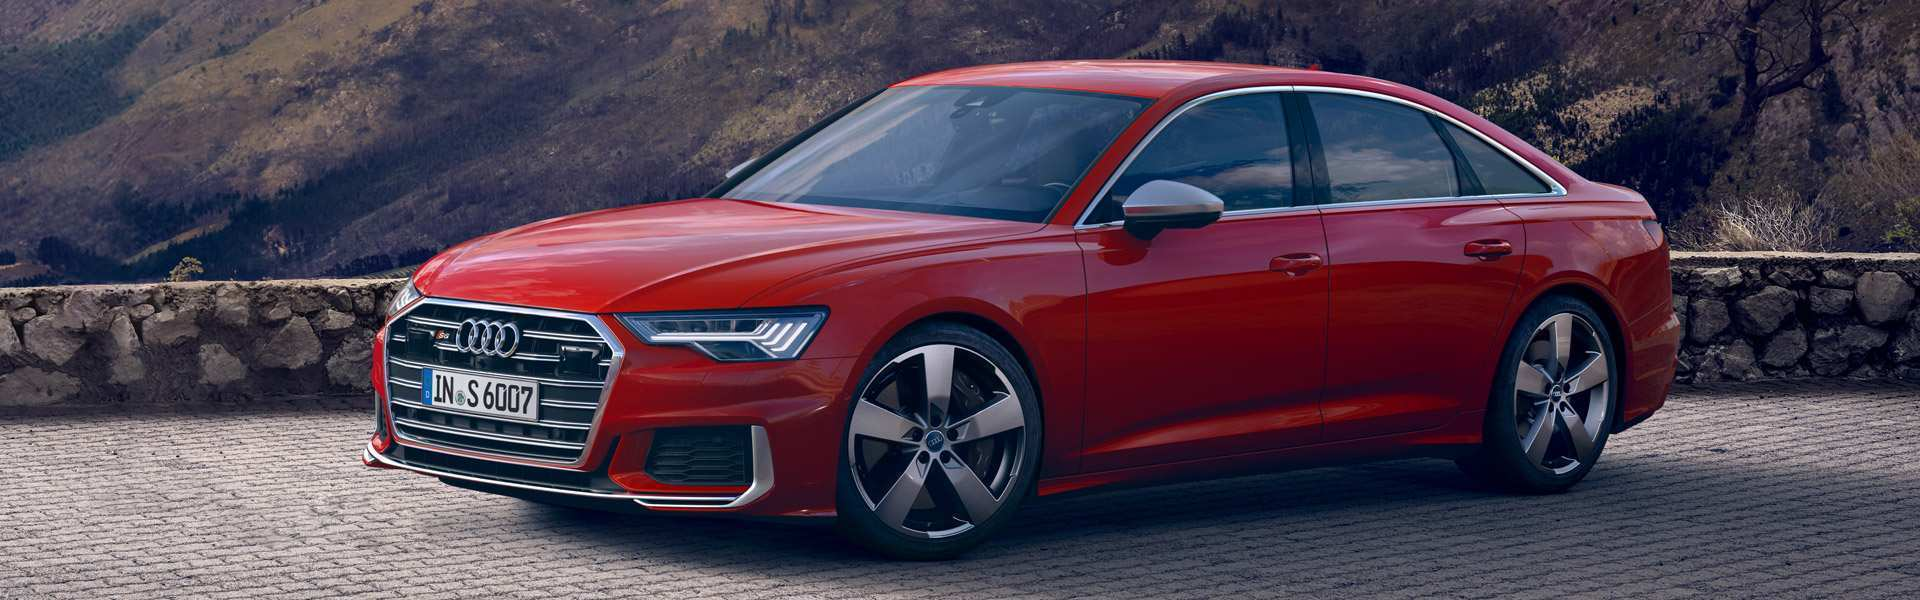 68 The Best 2020 Audi S6 Redesign And Concept